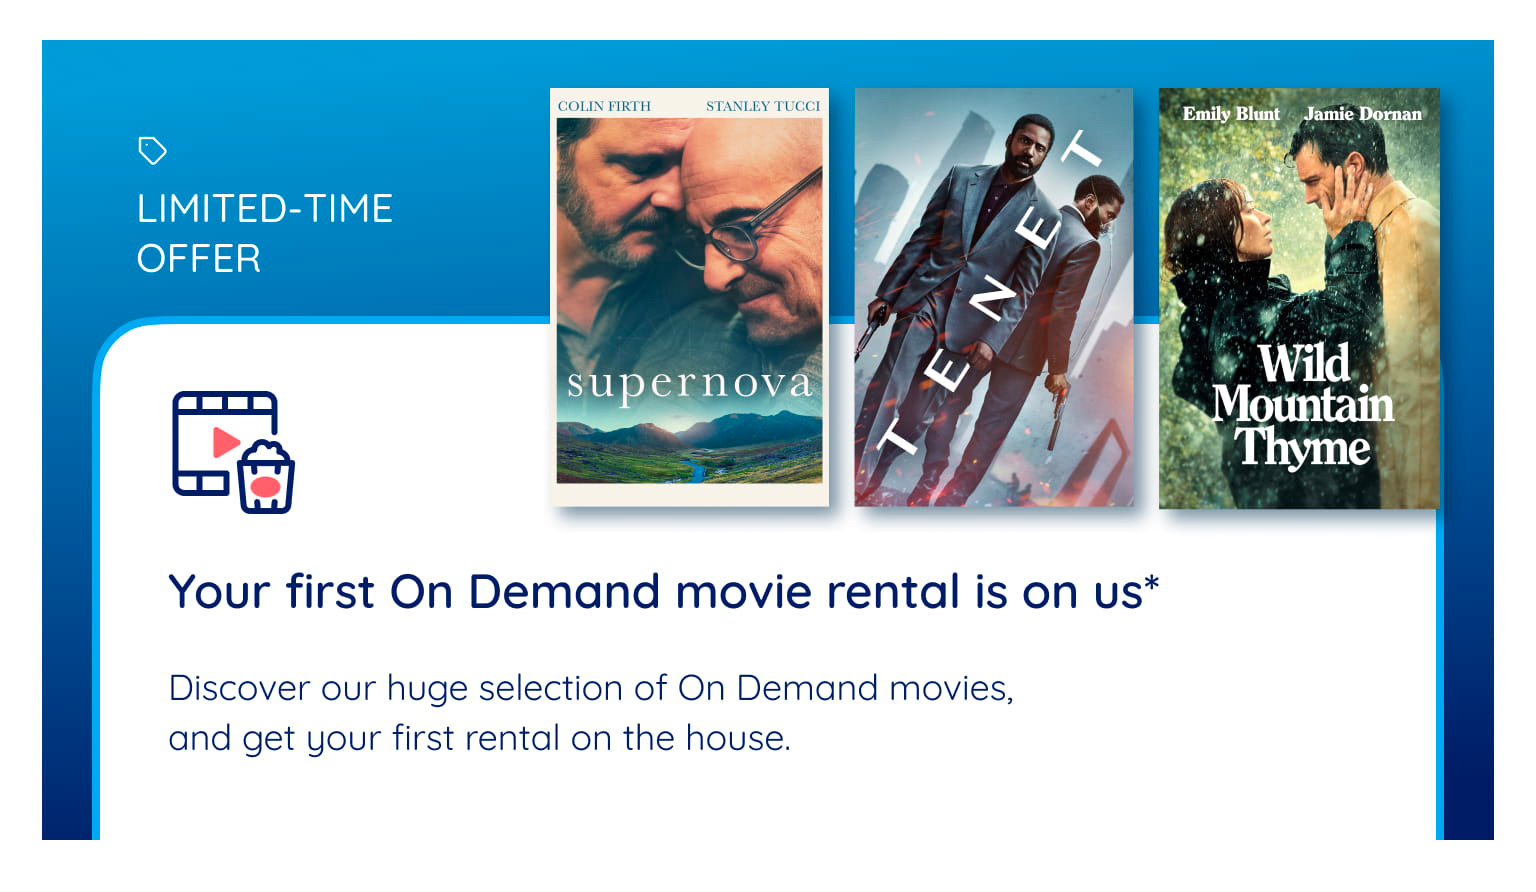 LIMITED-TIME OFFER Your first On Demand movie rental is on us* Discover our huge selection of On Demand movies, and get your first rental on the house.